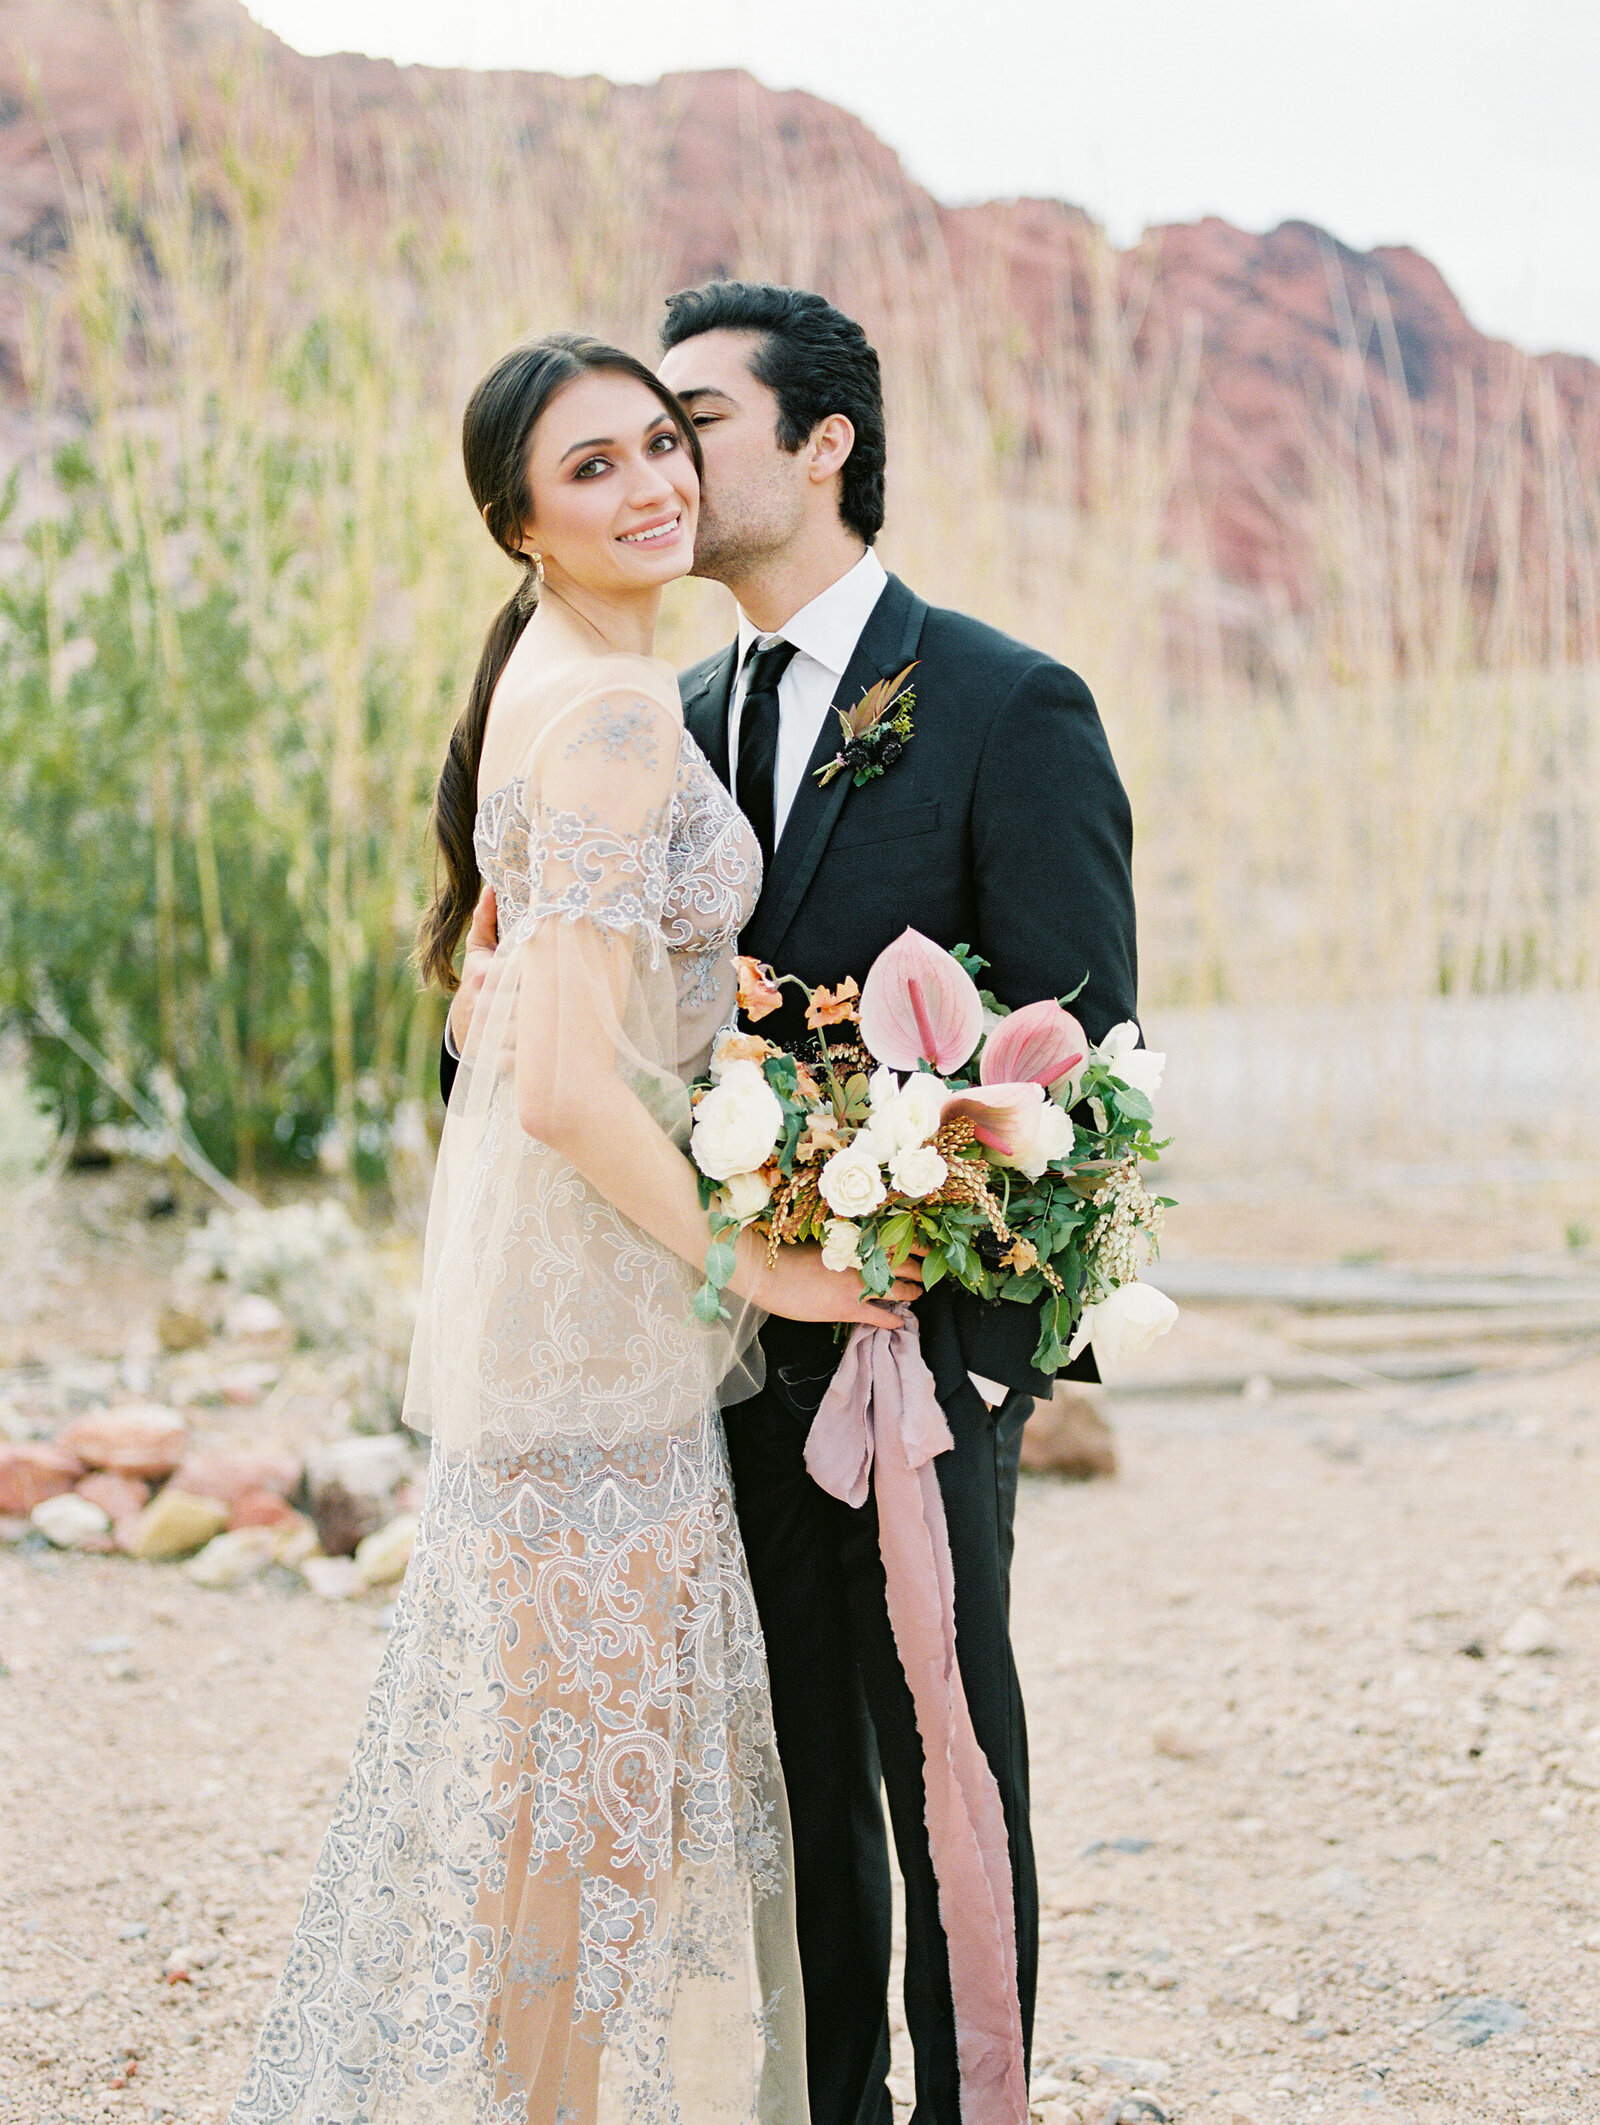 Destination-Elopement-Wedding-Photographer-Claire-Pettibone-Dress-Babsie